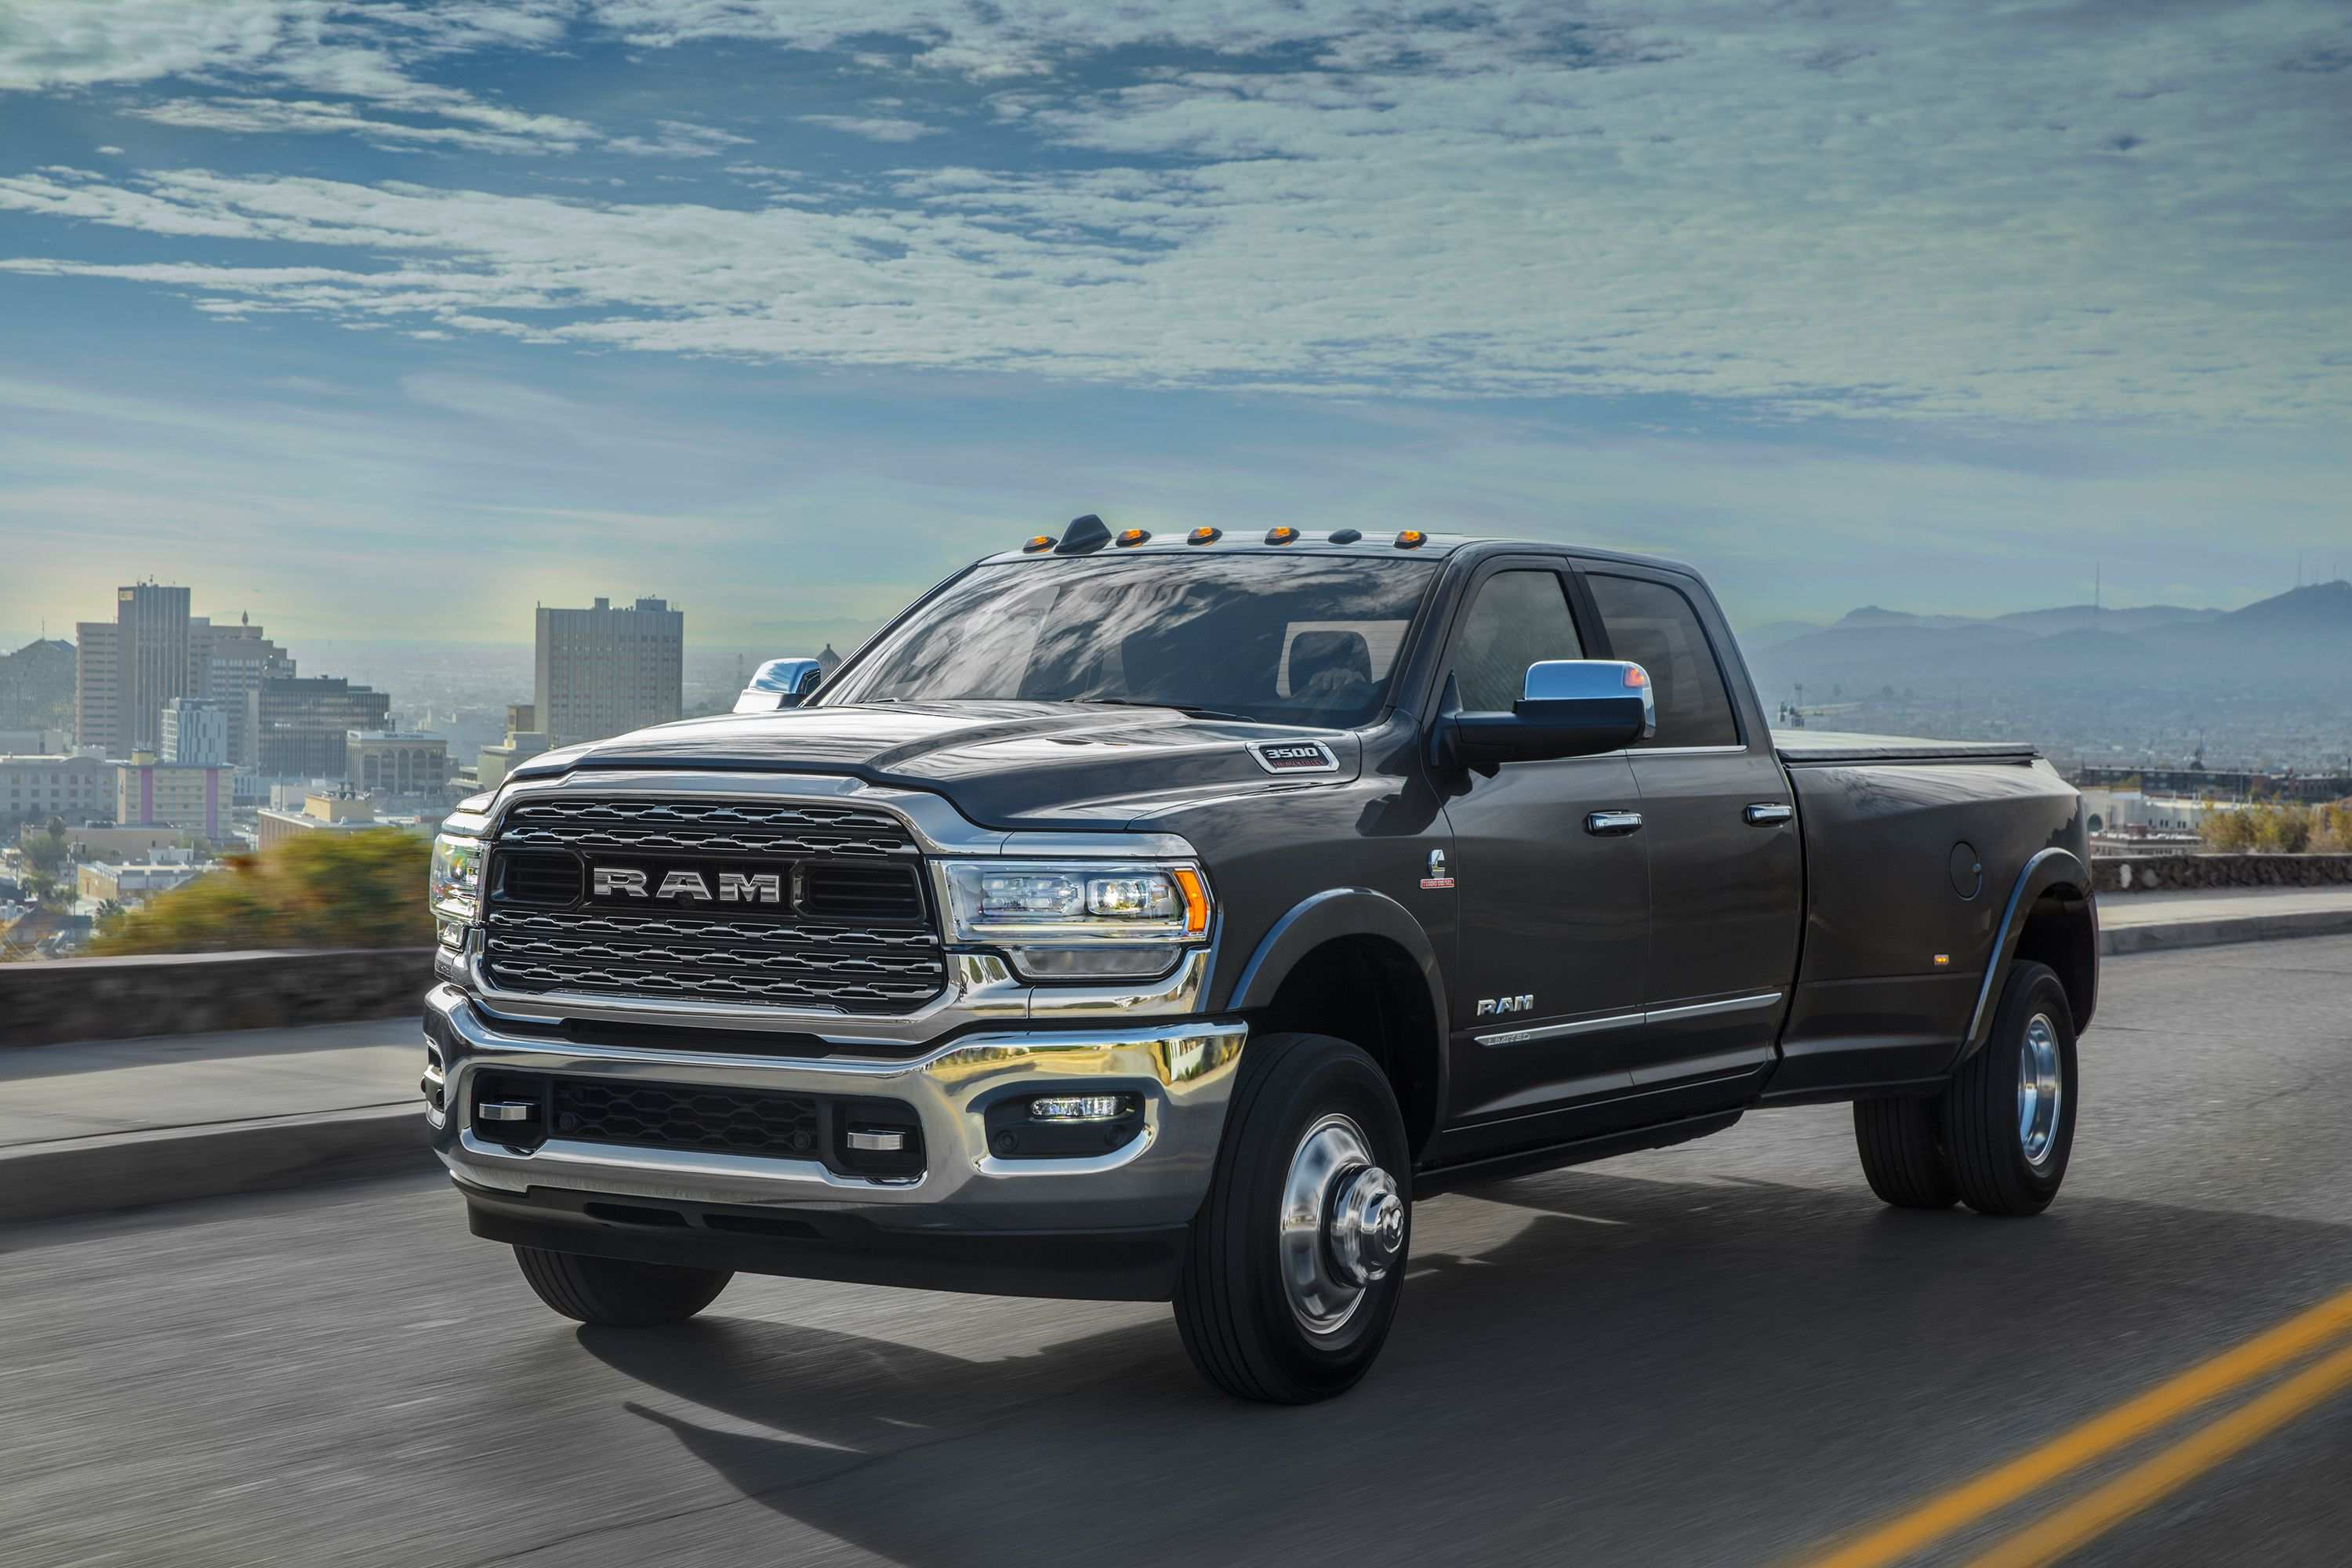 61 All New 2020 Dodge Ram 3500 History